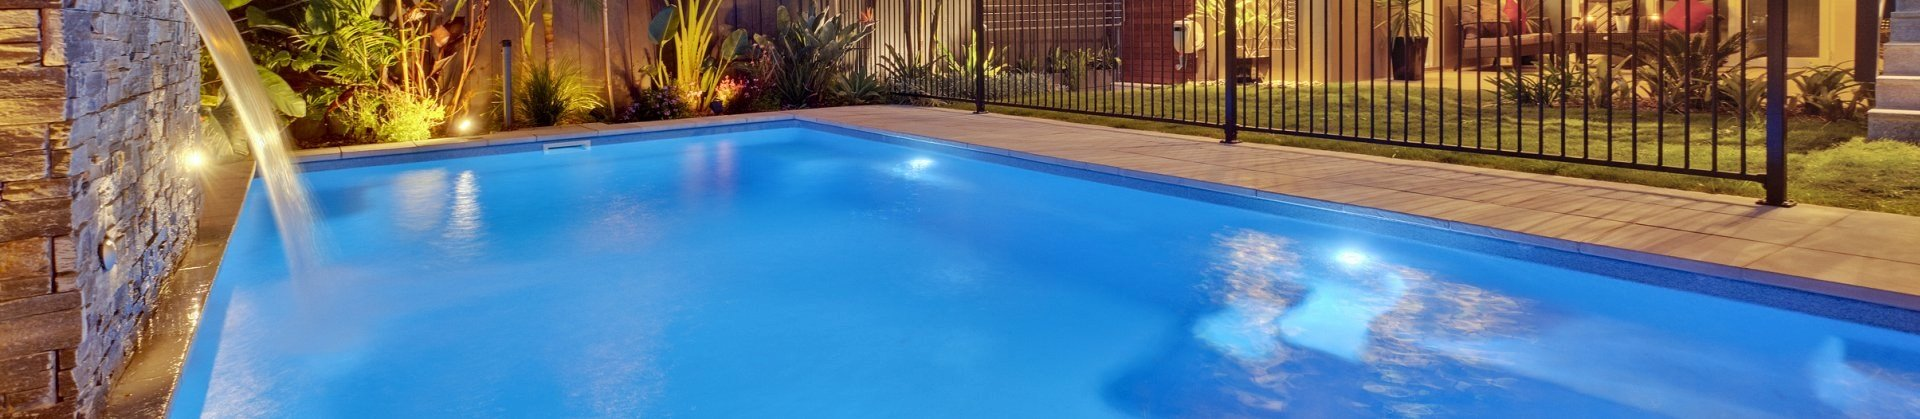 Composite Pool Solutions Fibreglass Pool Builder Bundaberg Qld Composite Pool Solutions